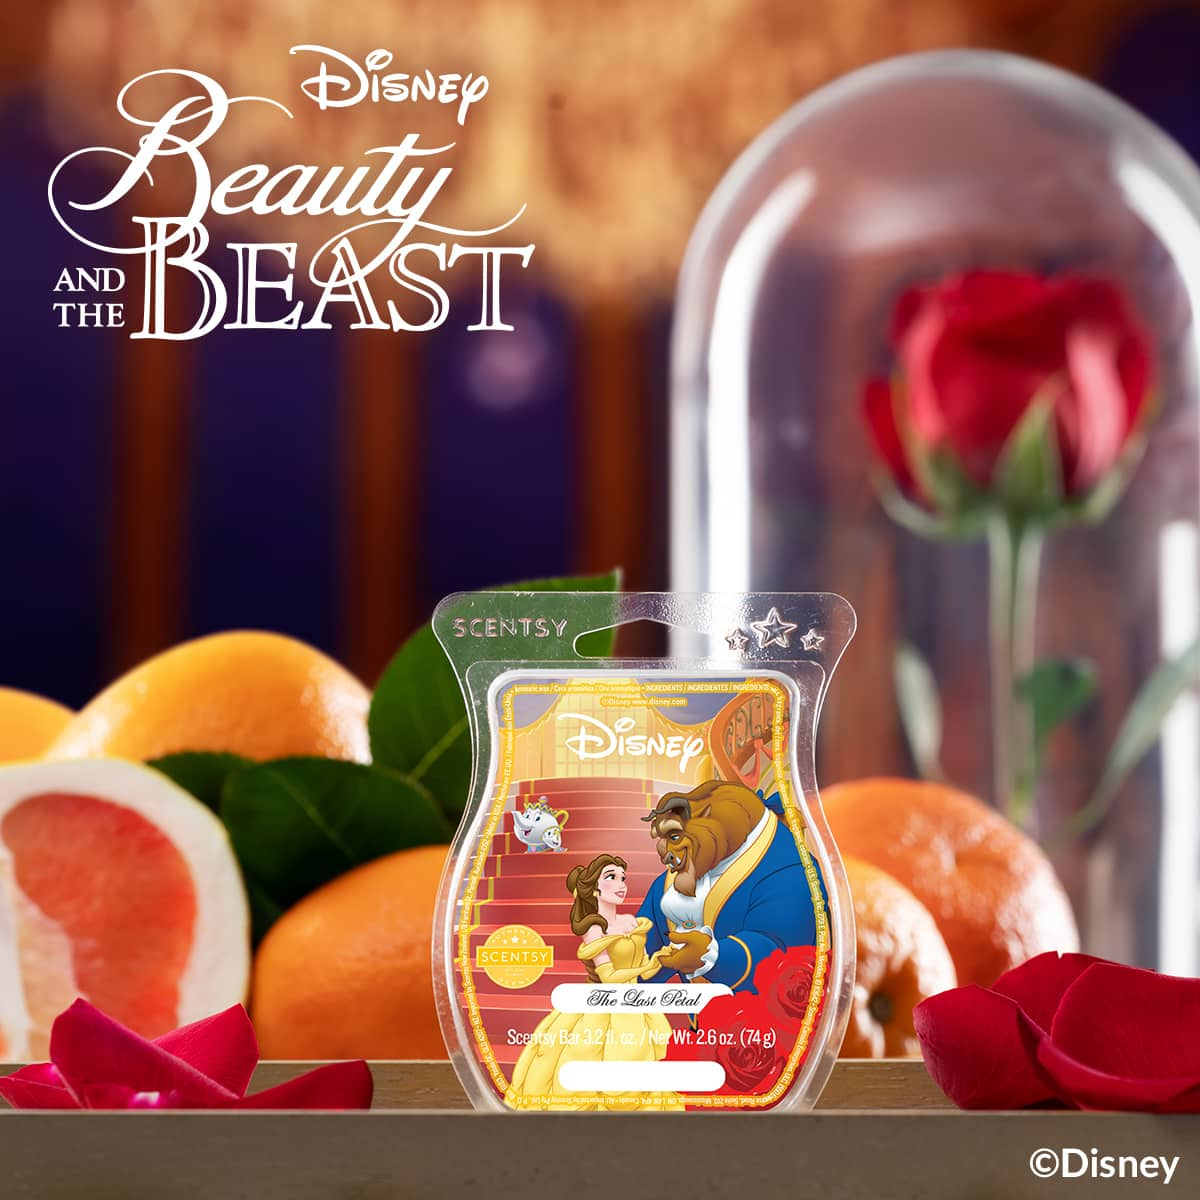 The Last Petal Beauty Beast Scentsy Fragrance | NEW! Beauty & The Beast Scentsy Collection | Mrs. Potts & Chip the Teacup Scentsy Warmers | Shop Now